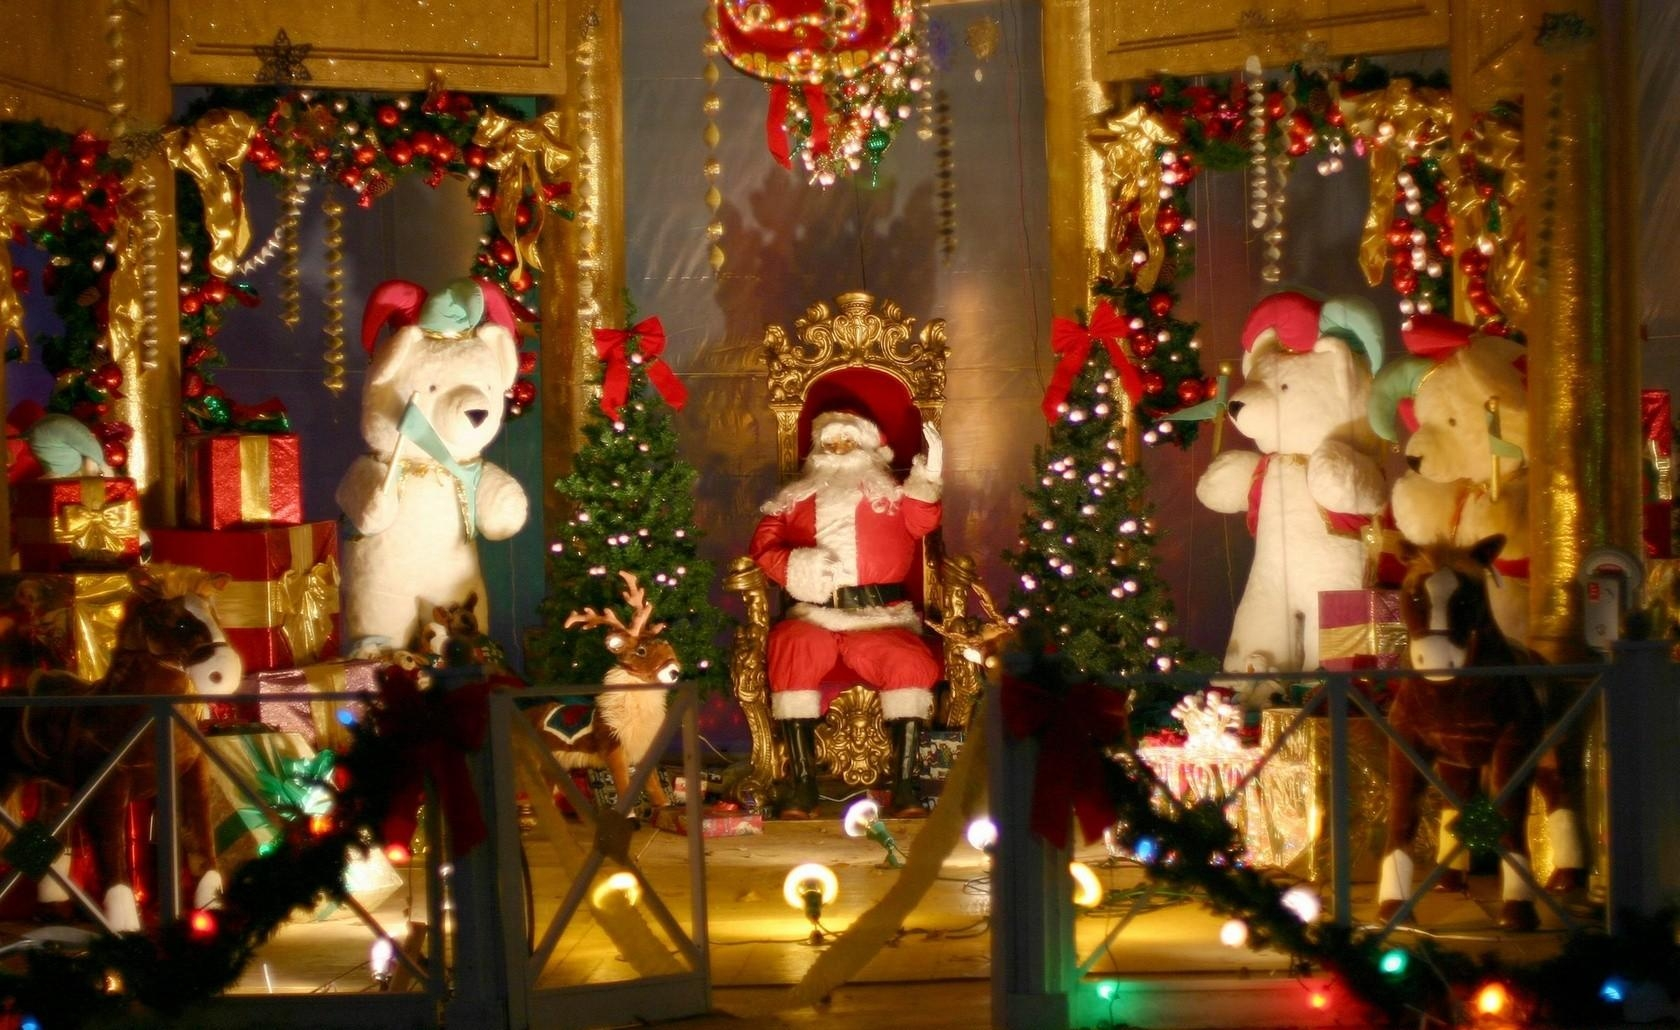 131503 download wallpaper Holidays, Santa Claus, Armchair, Bears, Toys, Presents, Gifts, Fencing, Enclosure, Decorations, Christmas, Fir-Trees screensavers and pictures for free